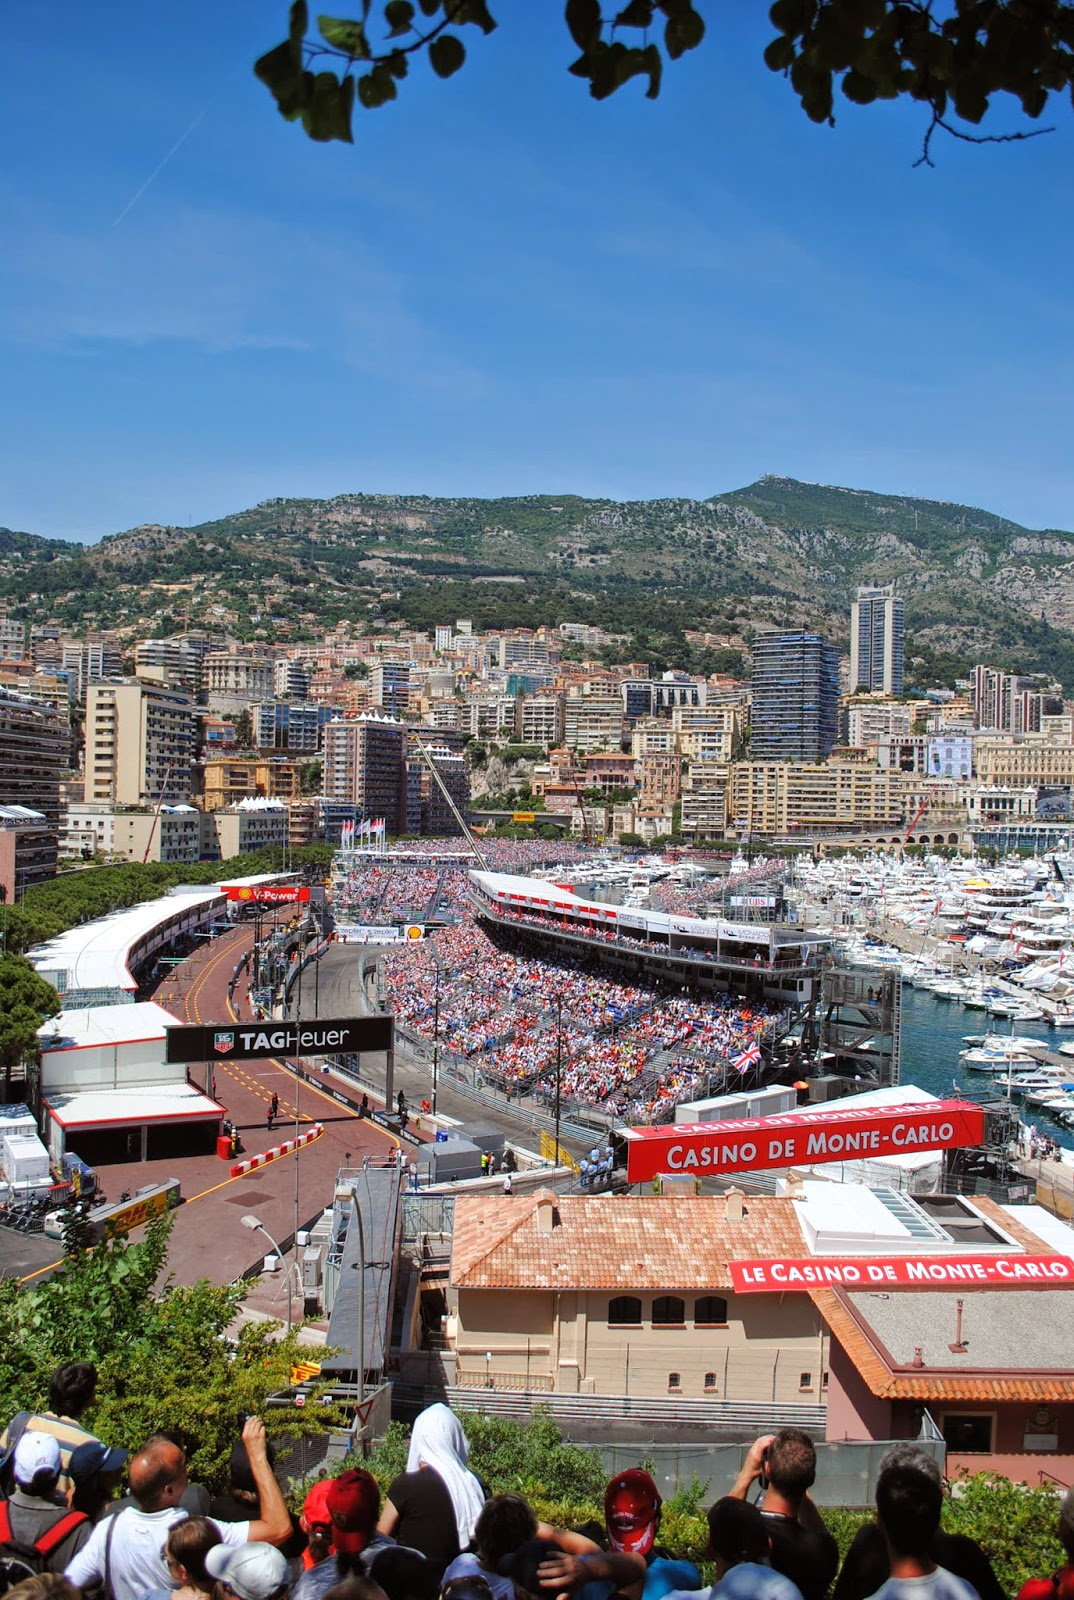 Enjoying the Journey - Monaco Grand Prix